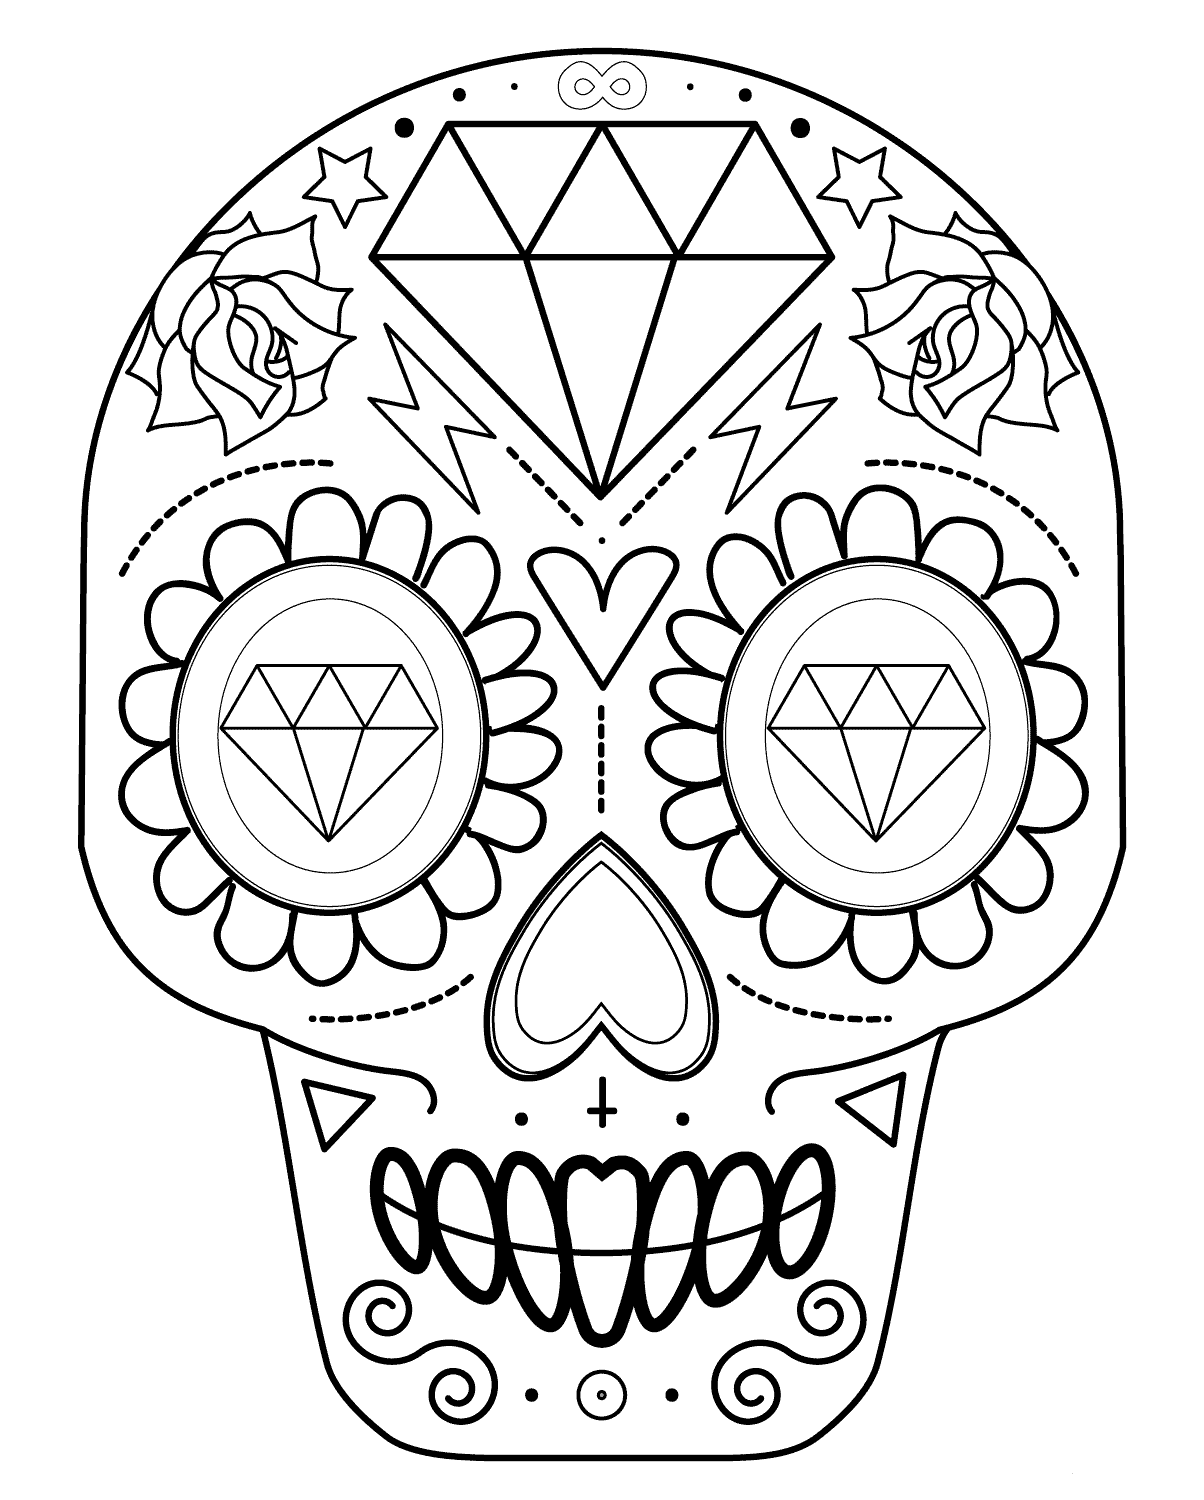 cute sugar skull coloring pages simple skulls and roses drawings sketch coloring page sugar coloring cute pages skull